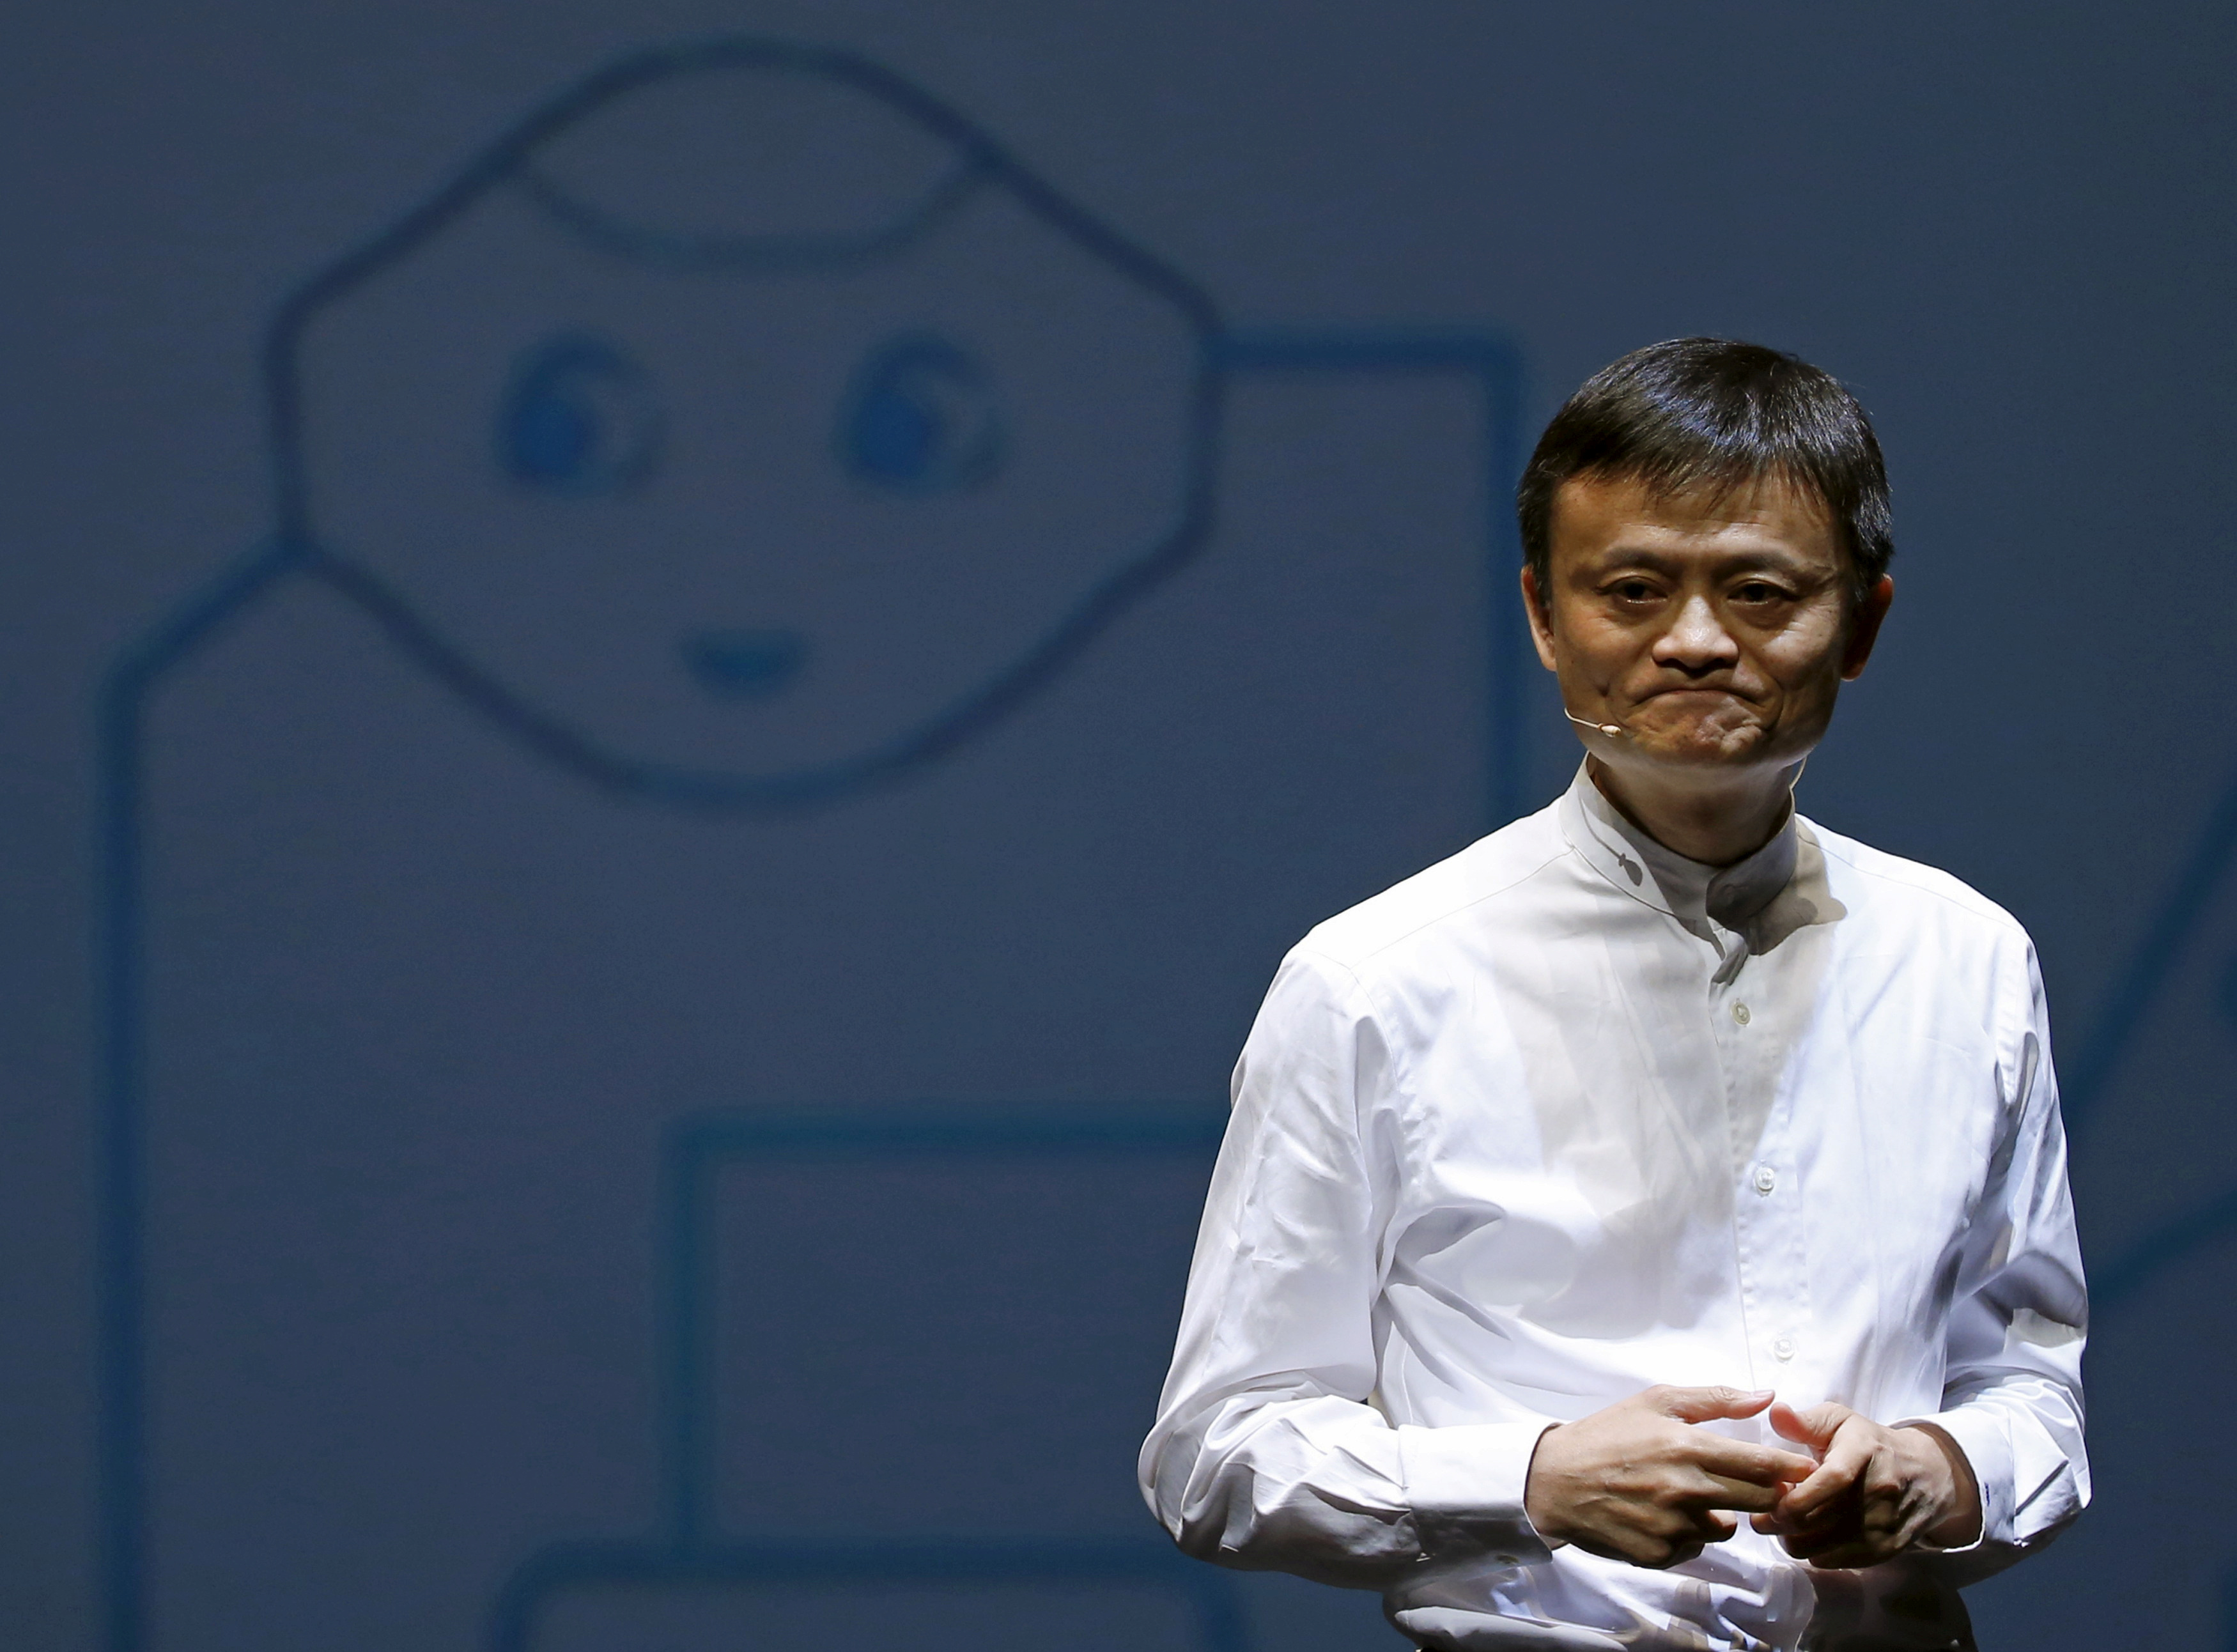 FILE PHOTO - Jack Ma, founder and executive chairman of China's Alibaba Group, speaks in front of a picture of SoftBank's human-like robot named 'pepper' during a news conference in Chiba, Japan, June 18, 2015. REUTERS/Yuya Shino